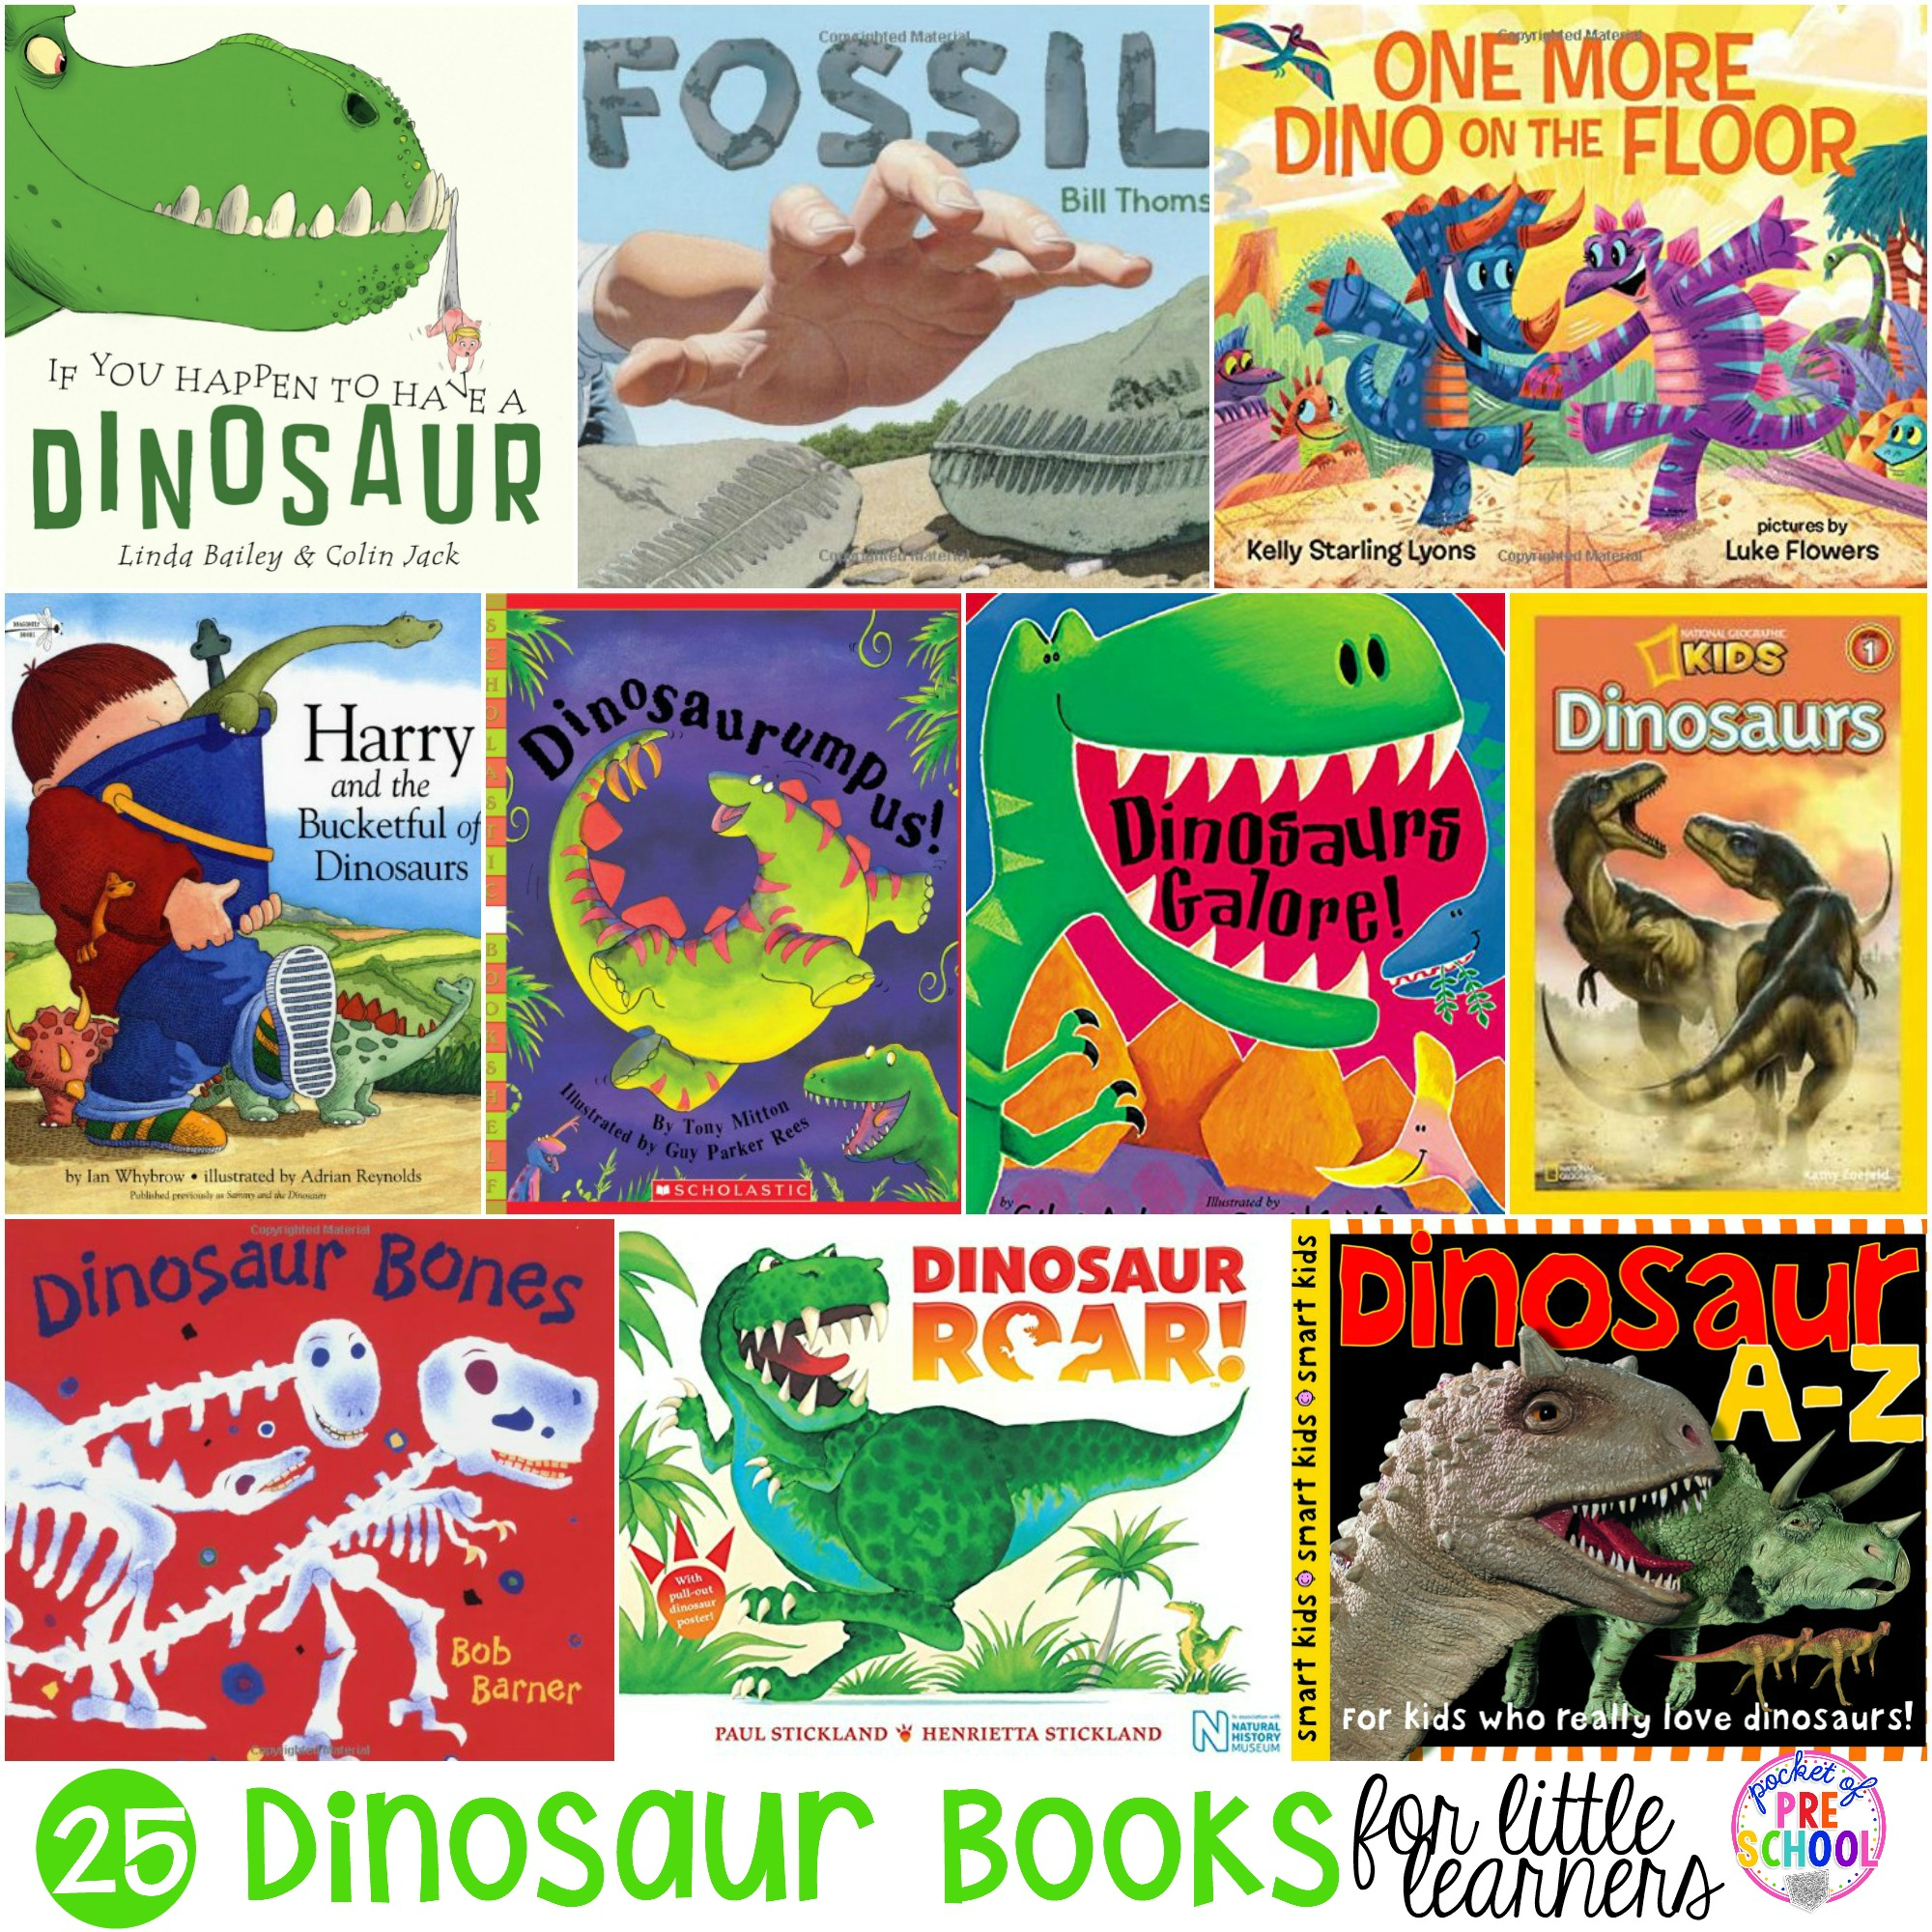 25 Dinosaur books for preschool, pre-k, and kindergarten. Includes fiction and non-fiction picture books for your little dinosaur lovers!